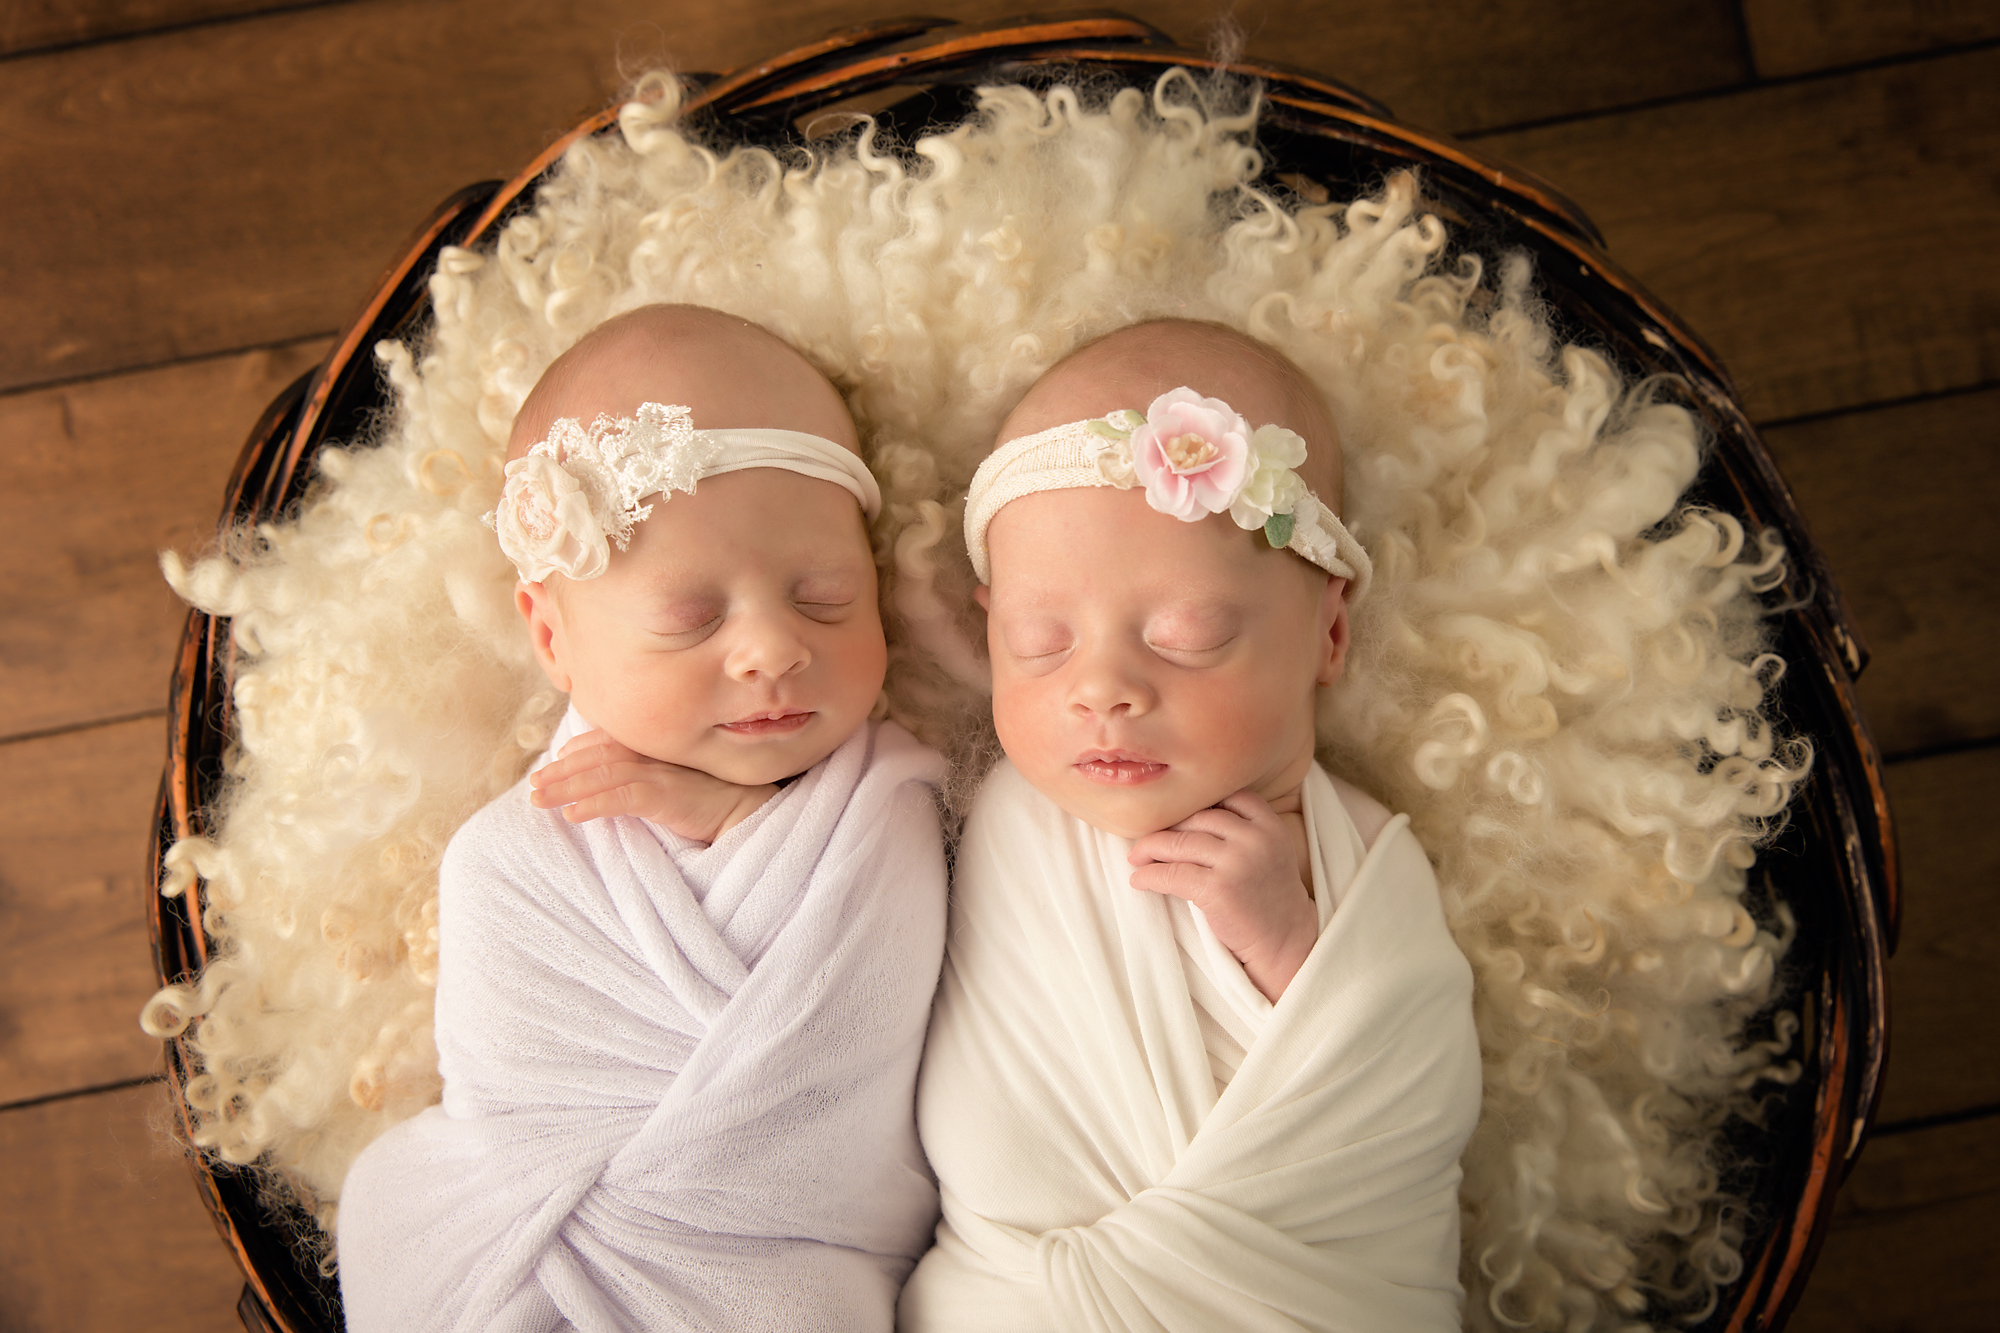 Twins Photography in Calgary, Alberta by Milashka Photography. Newborn twin photography ideas.